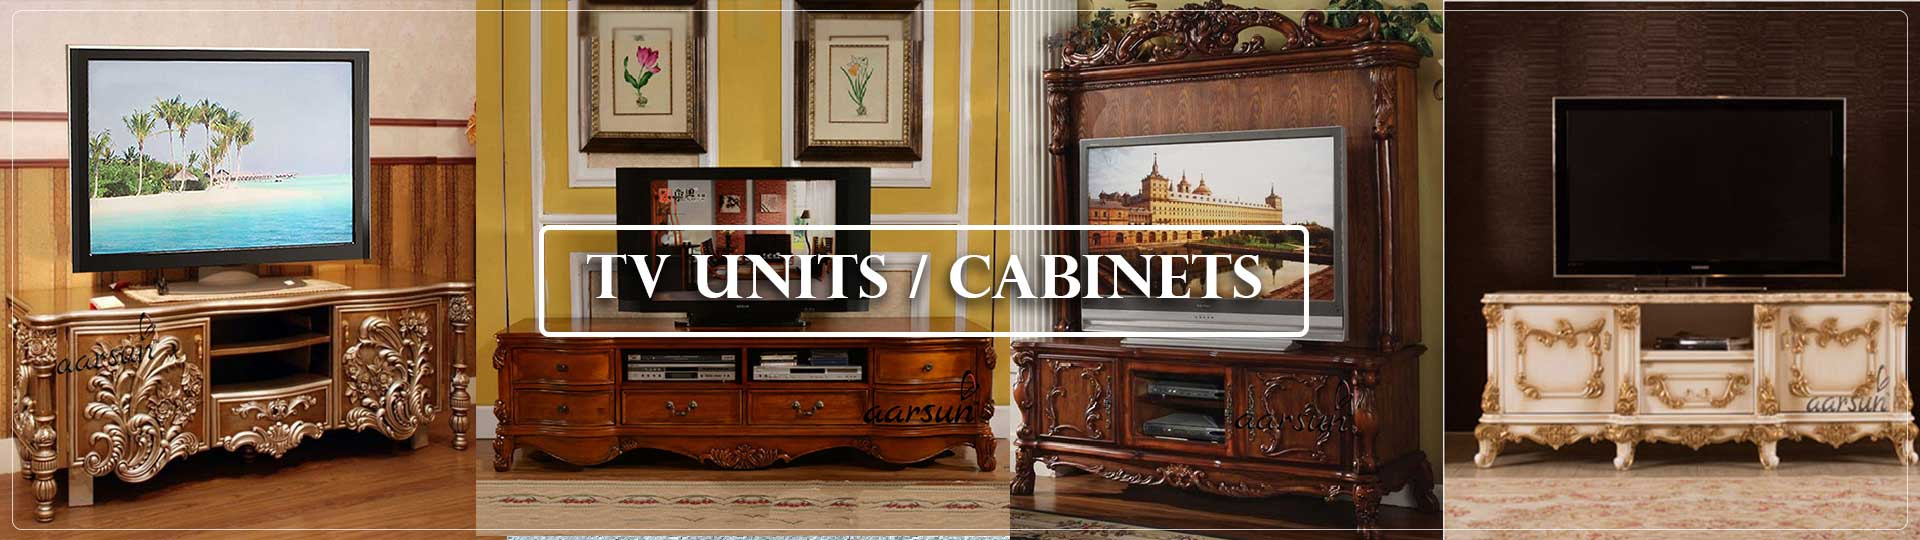 Aarsun TV Units Cabinets